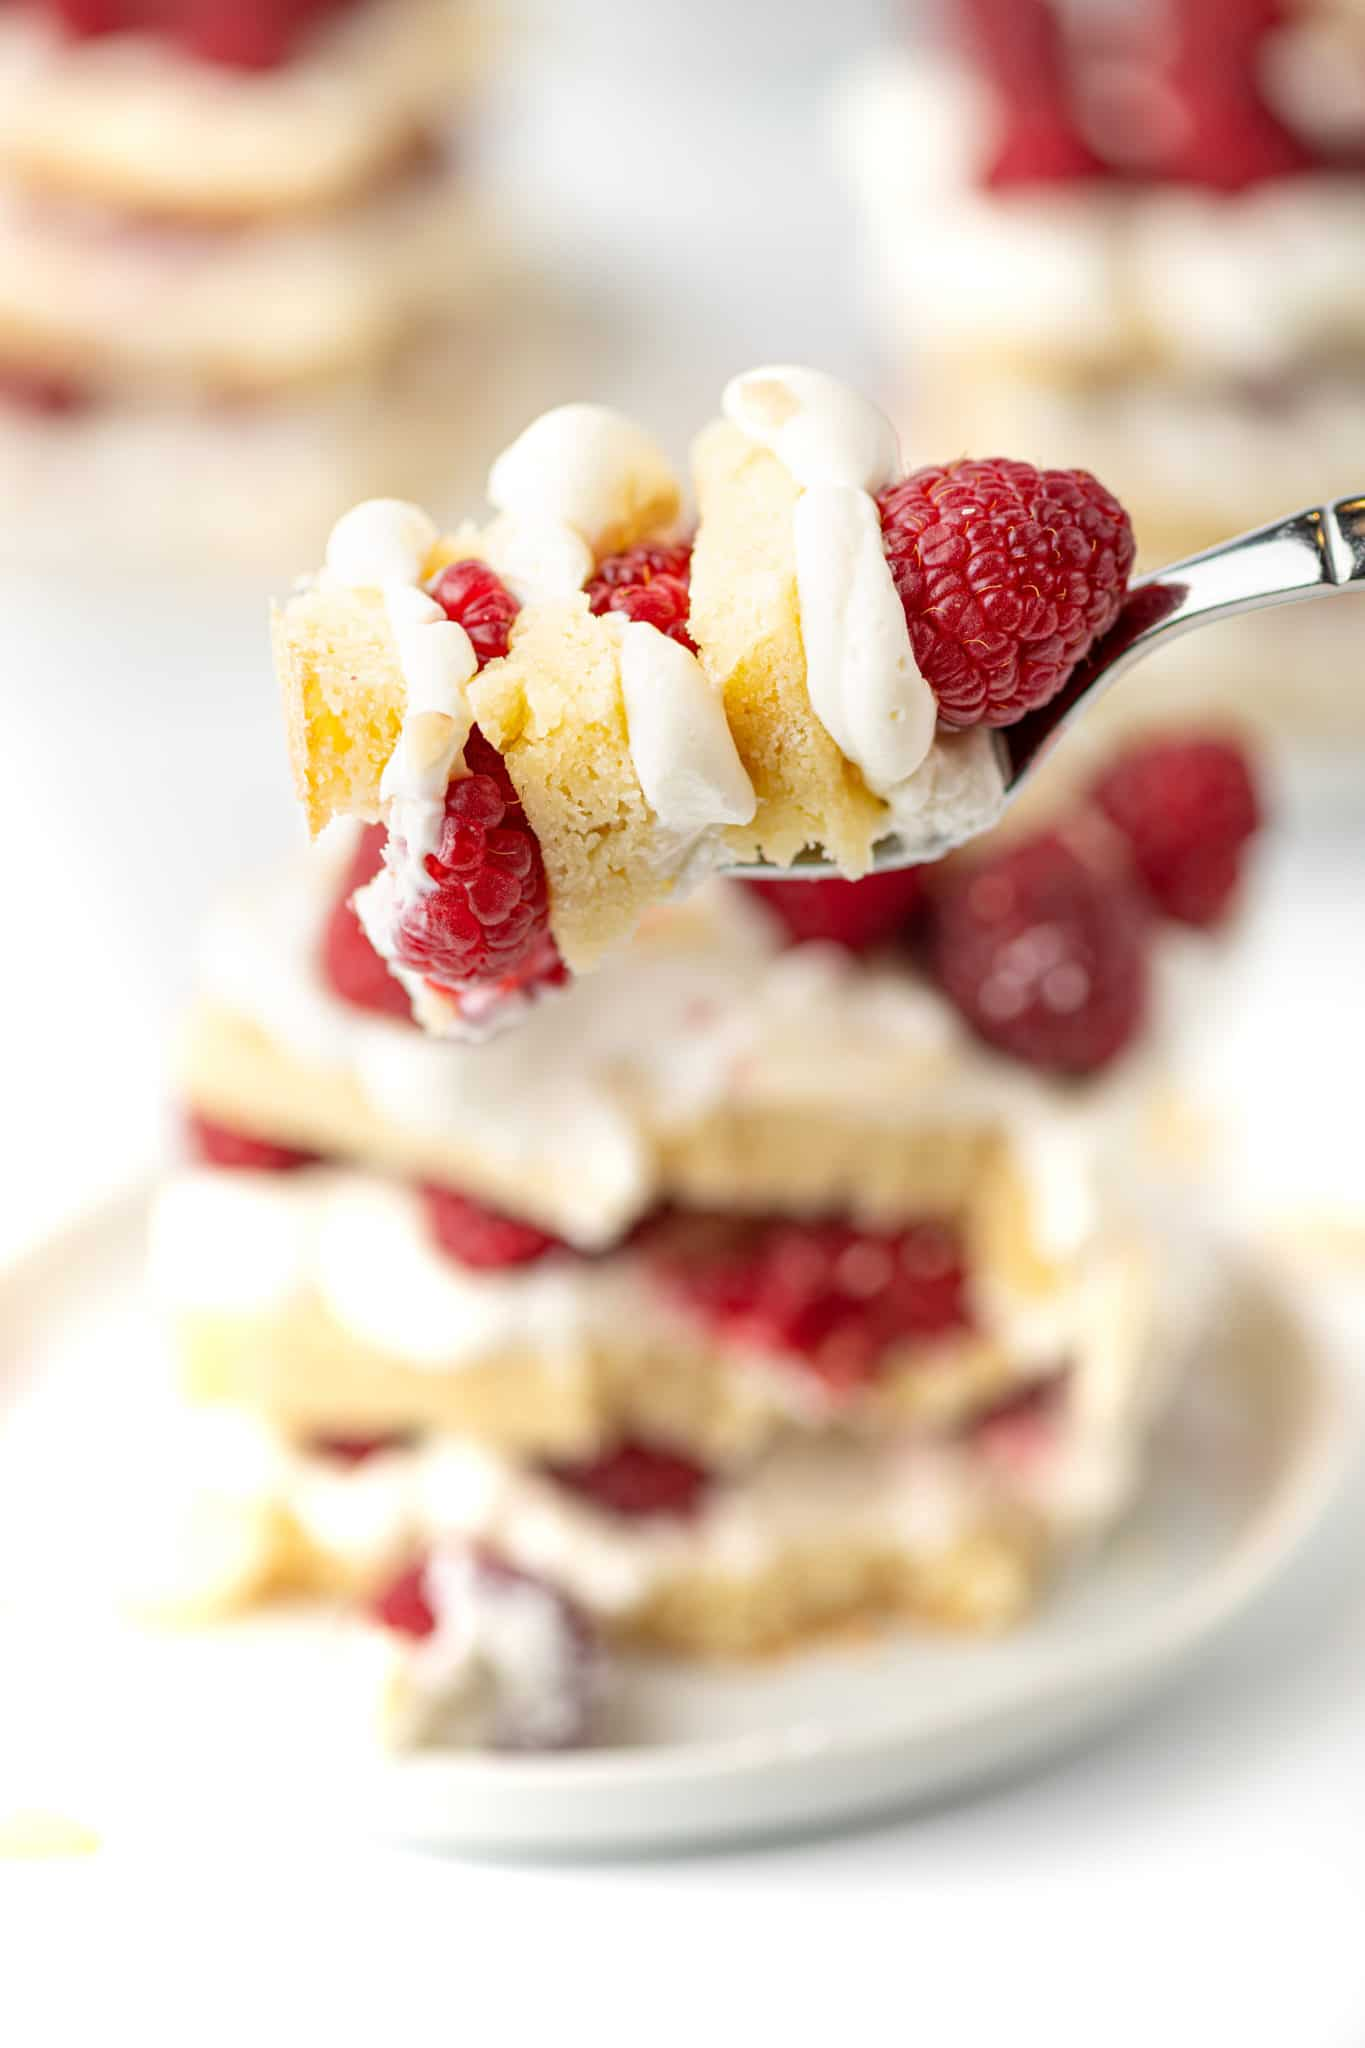 A close up shot of a piece of low carb short cake with layers of cake, whipped cream filling, and raspberries on a small dessert fork.  Blurred background.